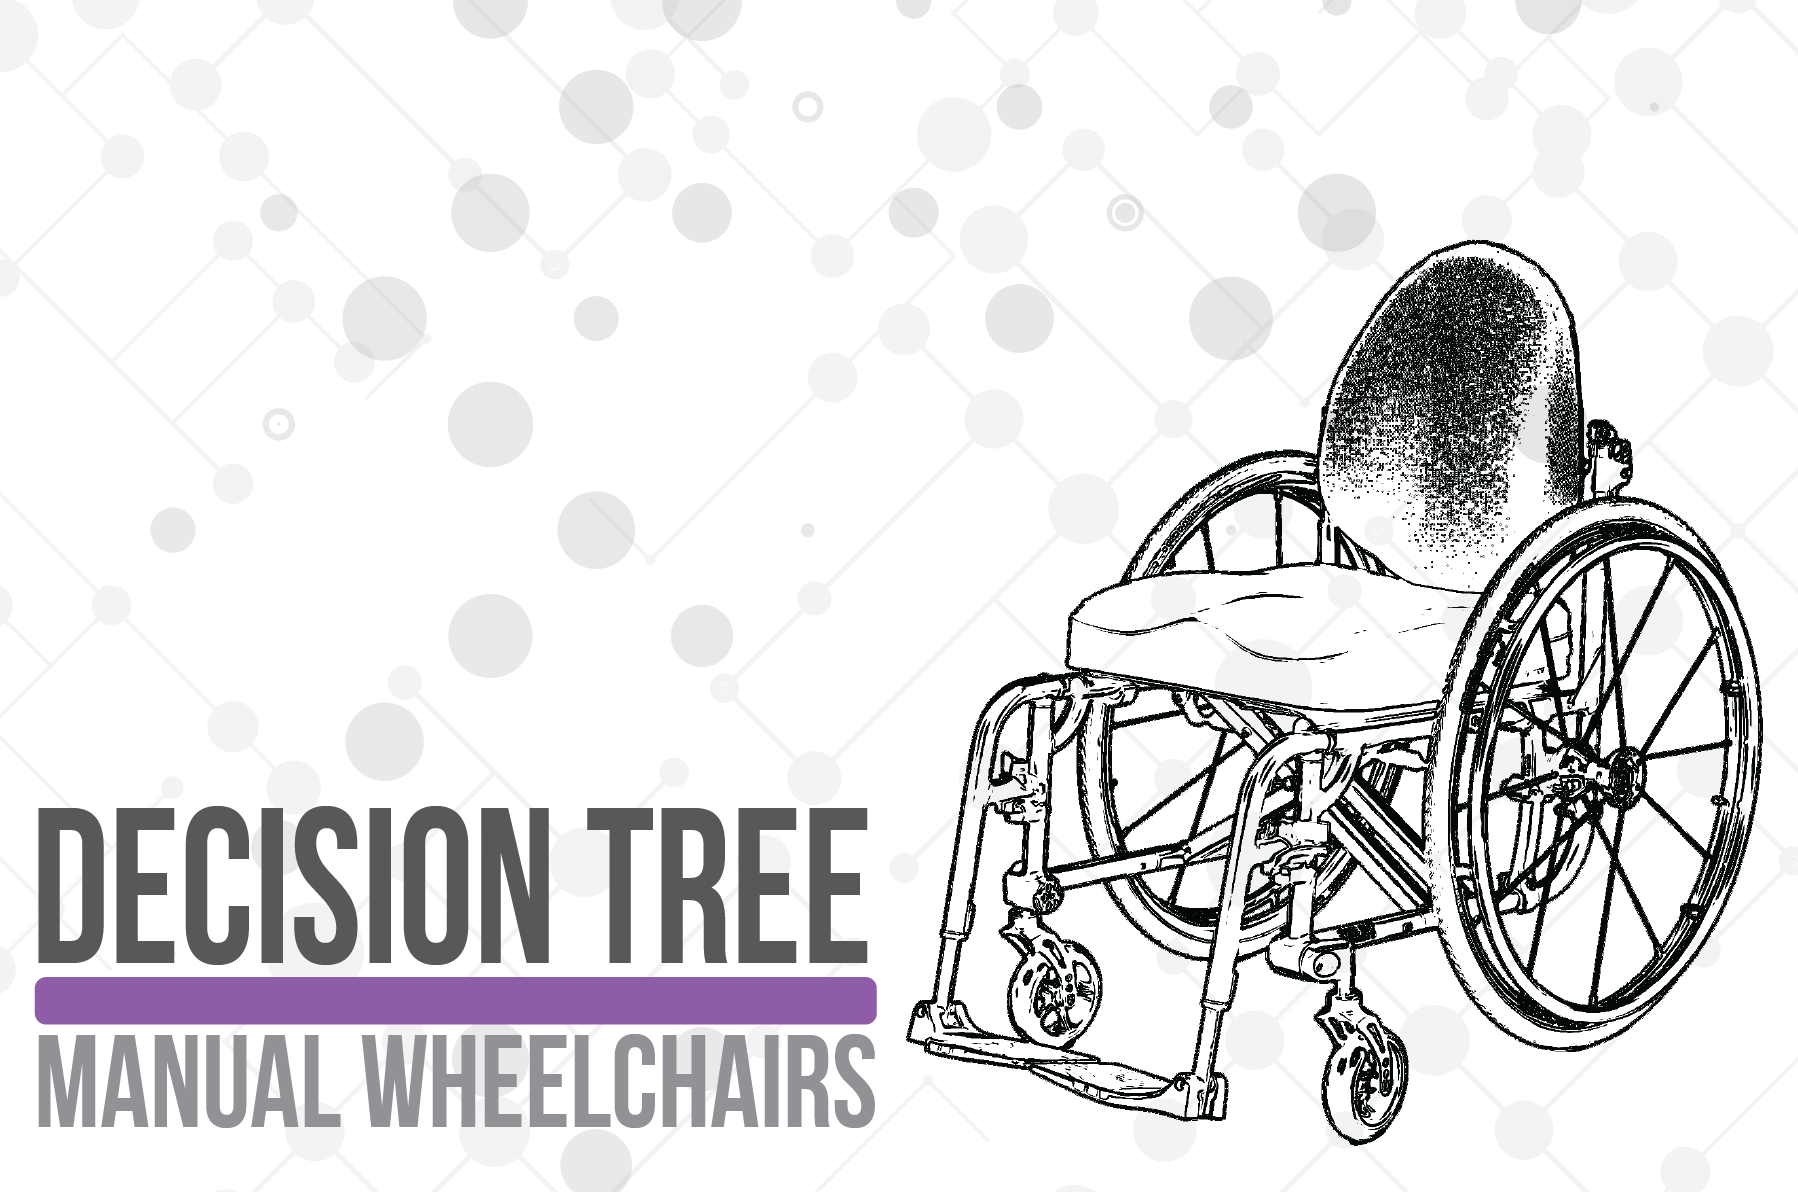 Decision tree - manual wheelchairs - feature image